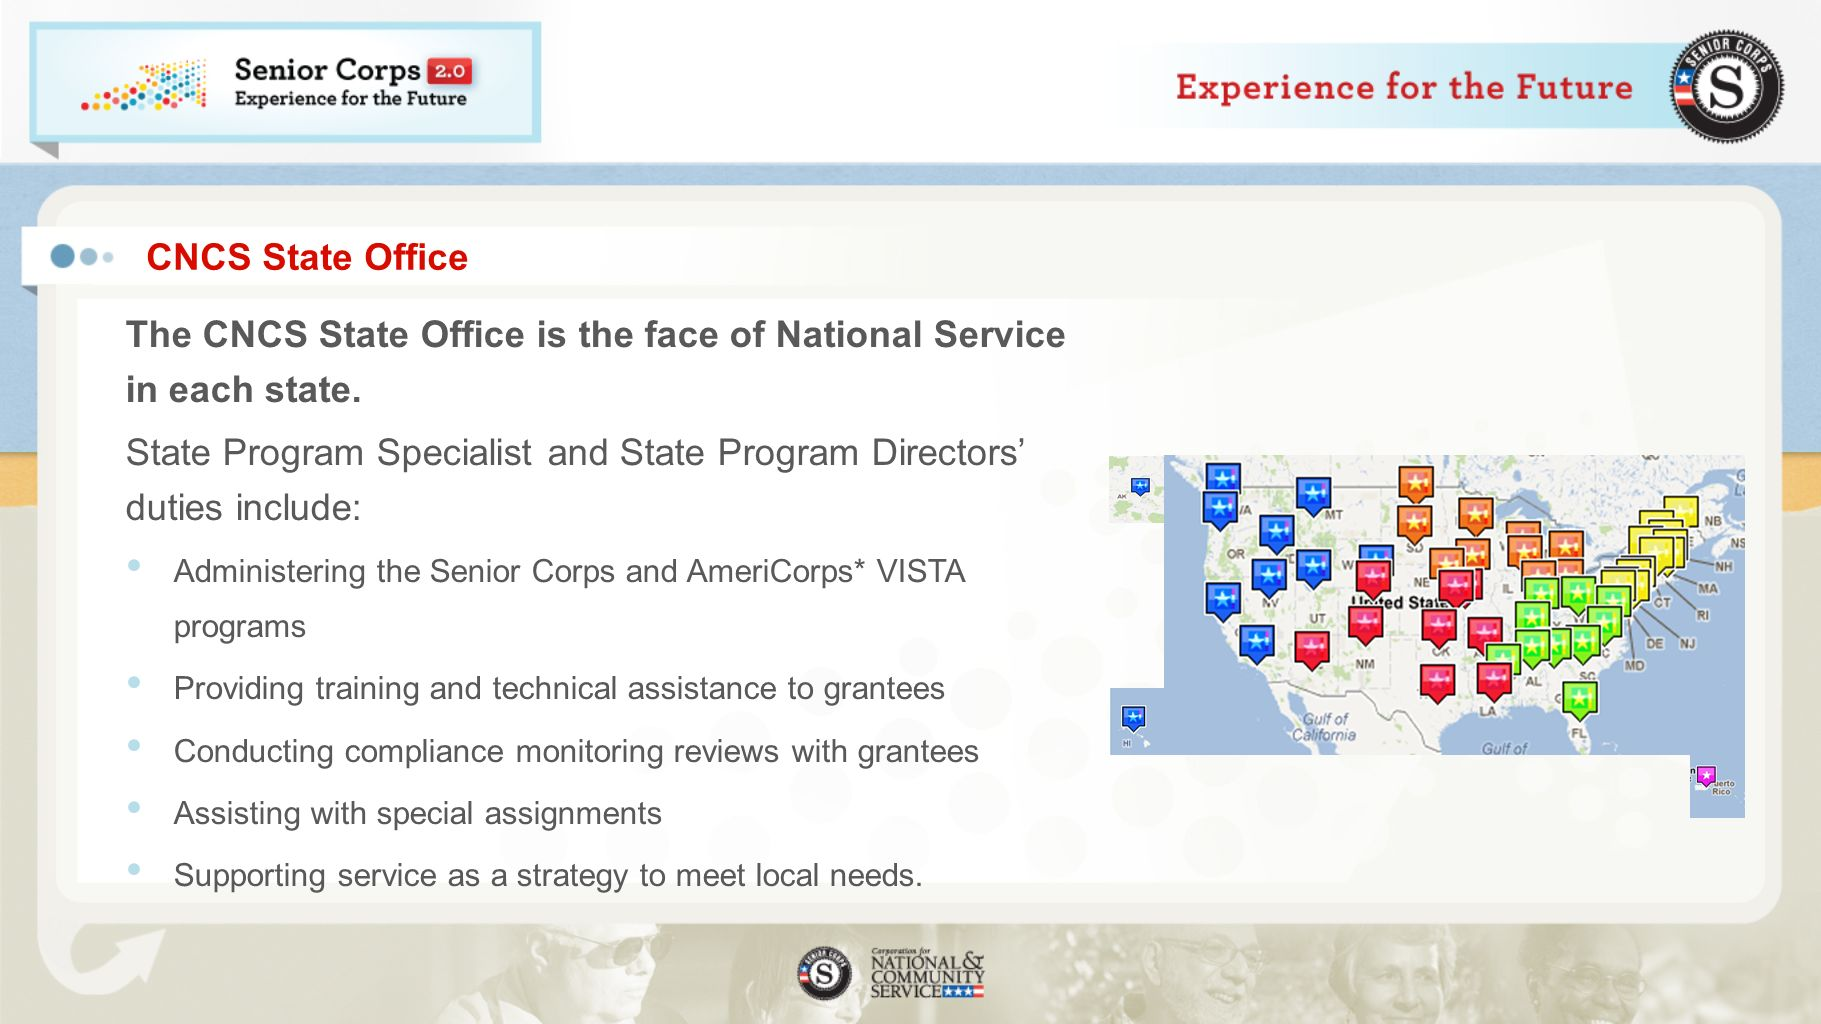 The CNCS State Office is the face of National Service in each state.